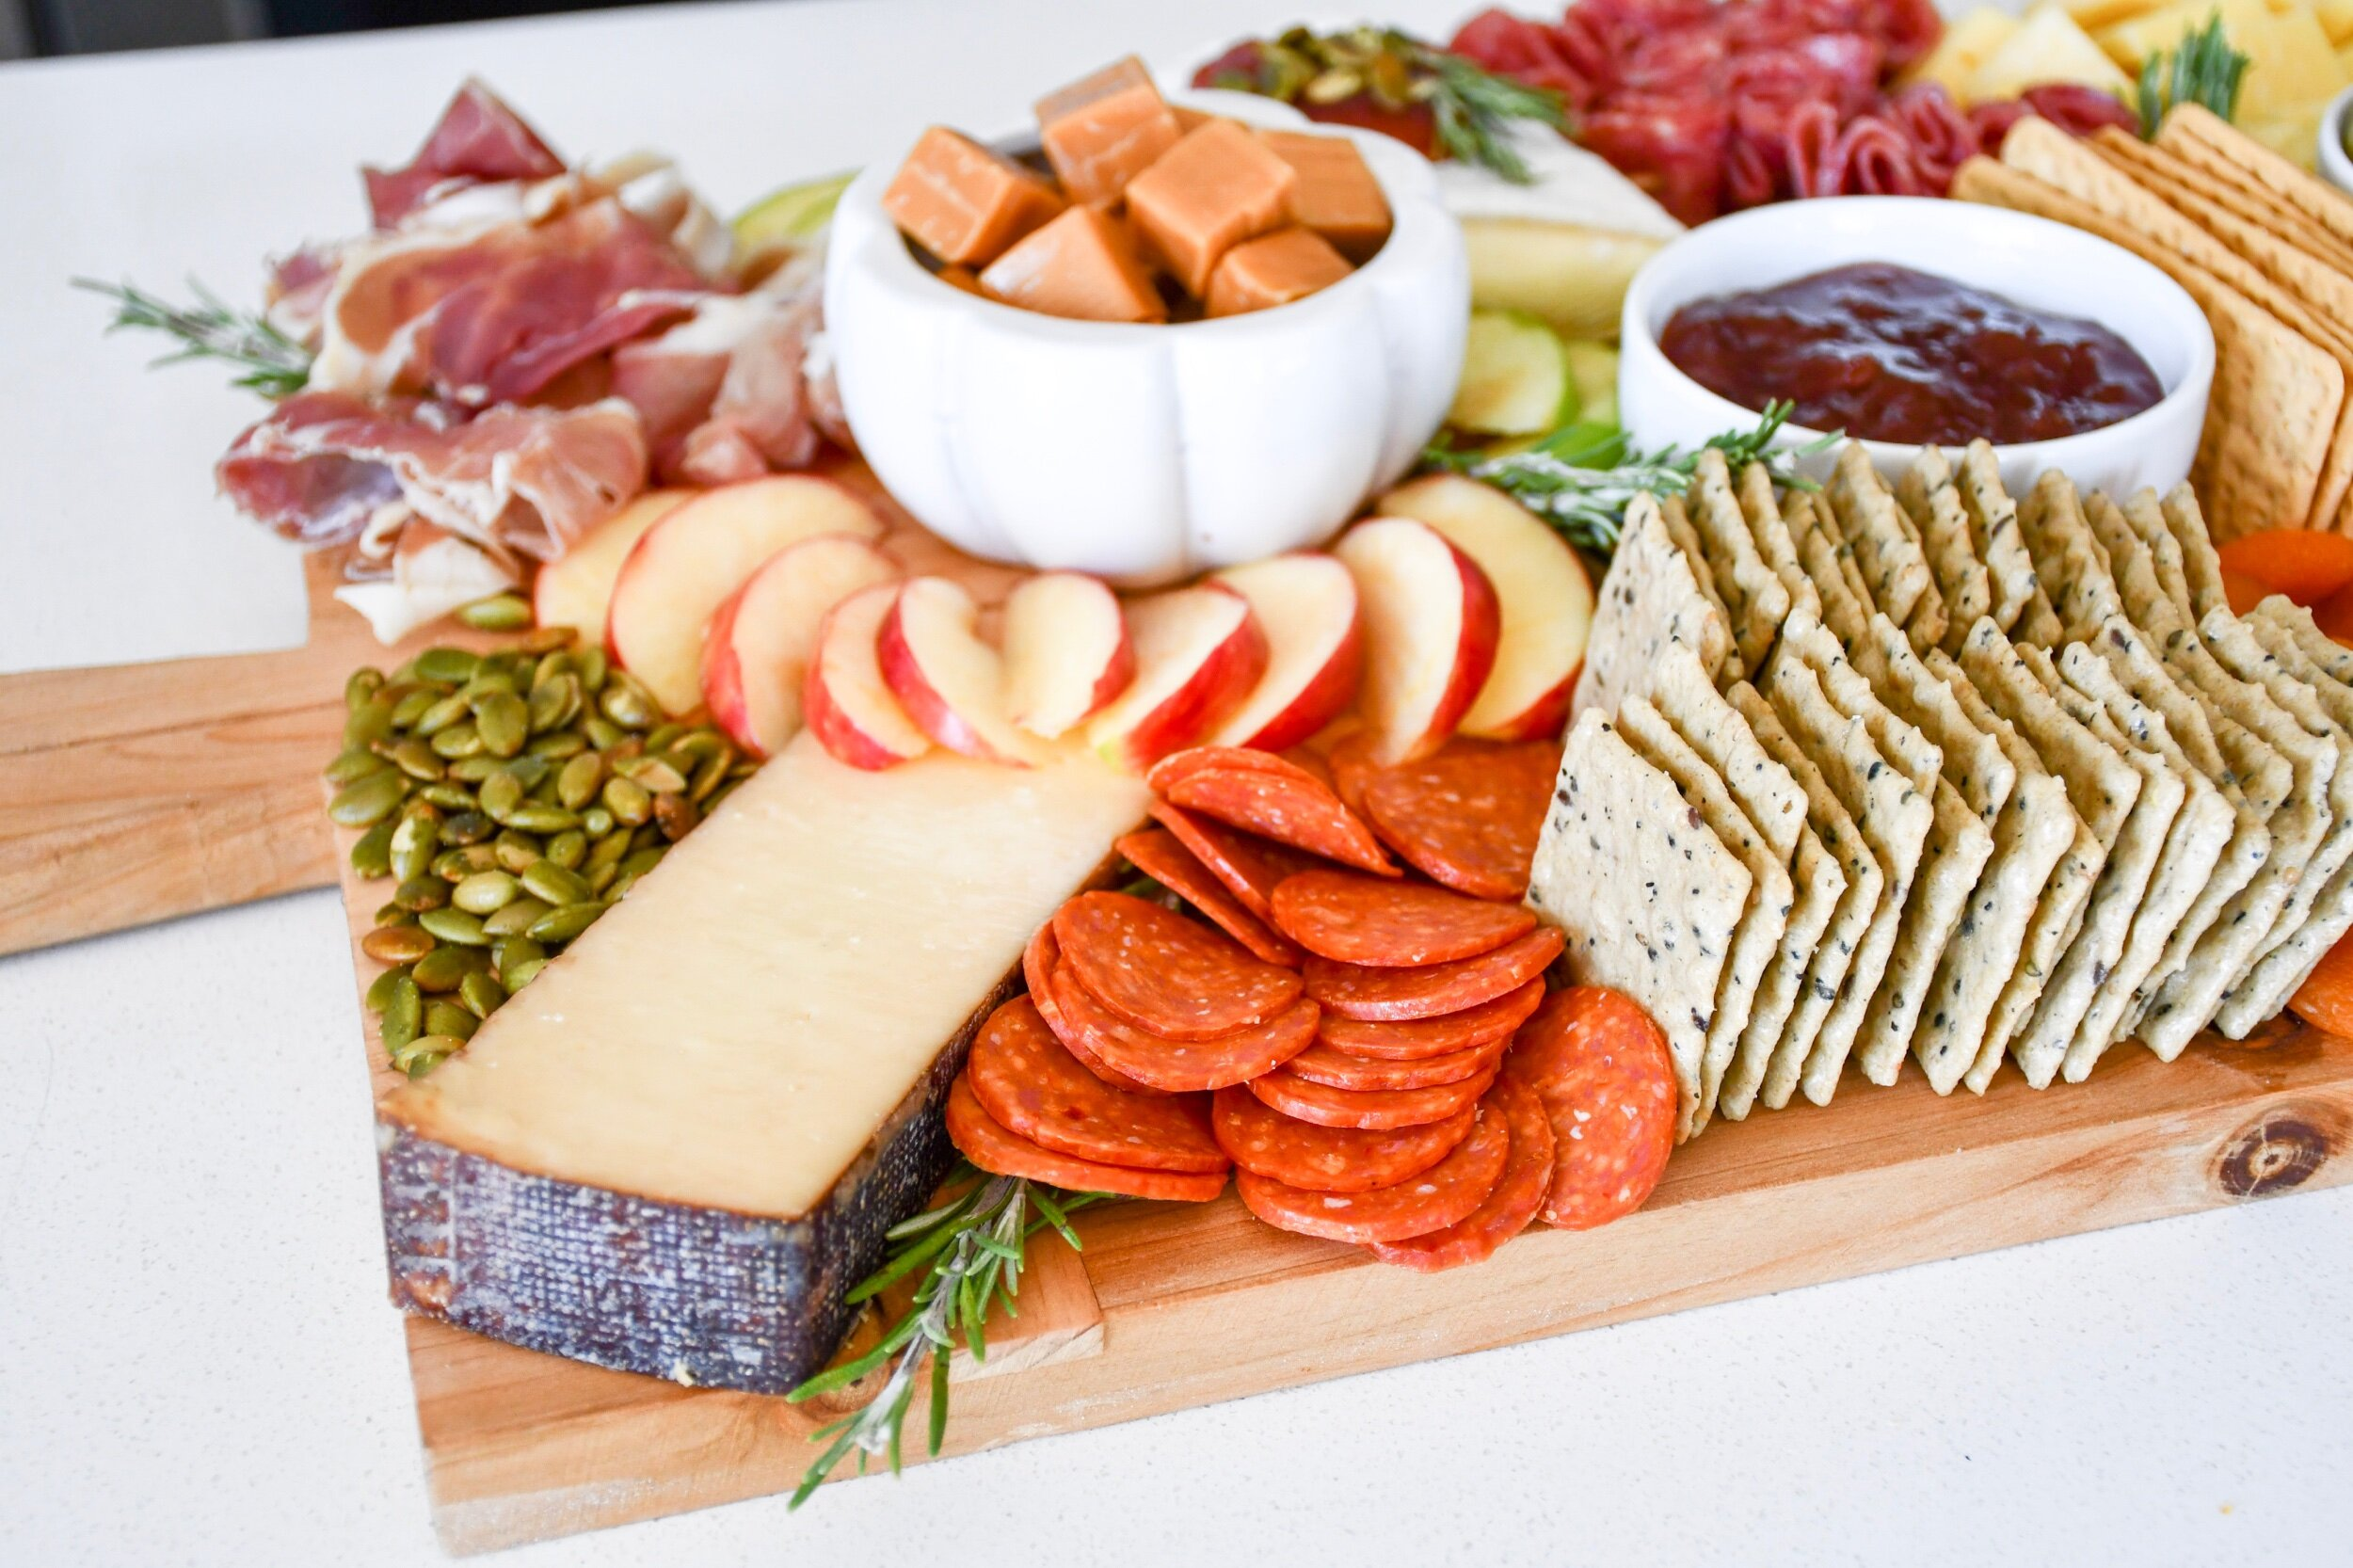 Fall Inspired Charcuterie Board | tarynintotravel.com |  #cheeseboard #partyfood #foodcenterpiece #charcuterieboard